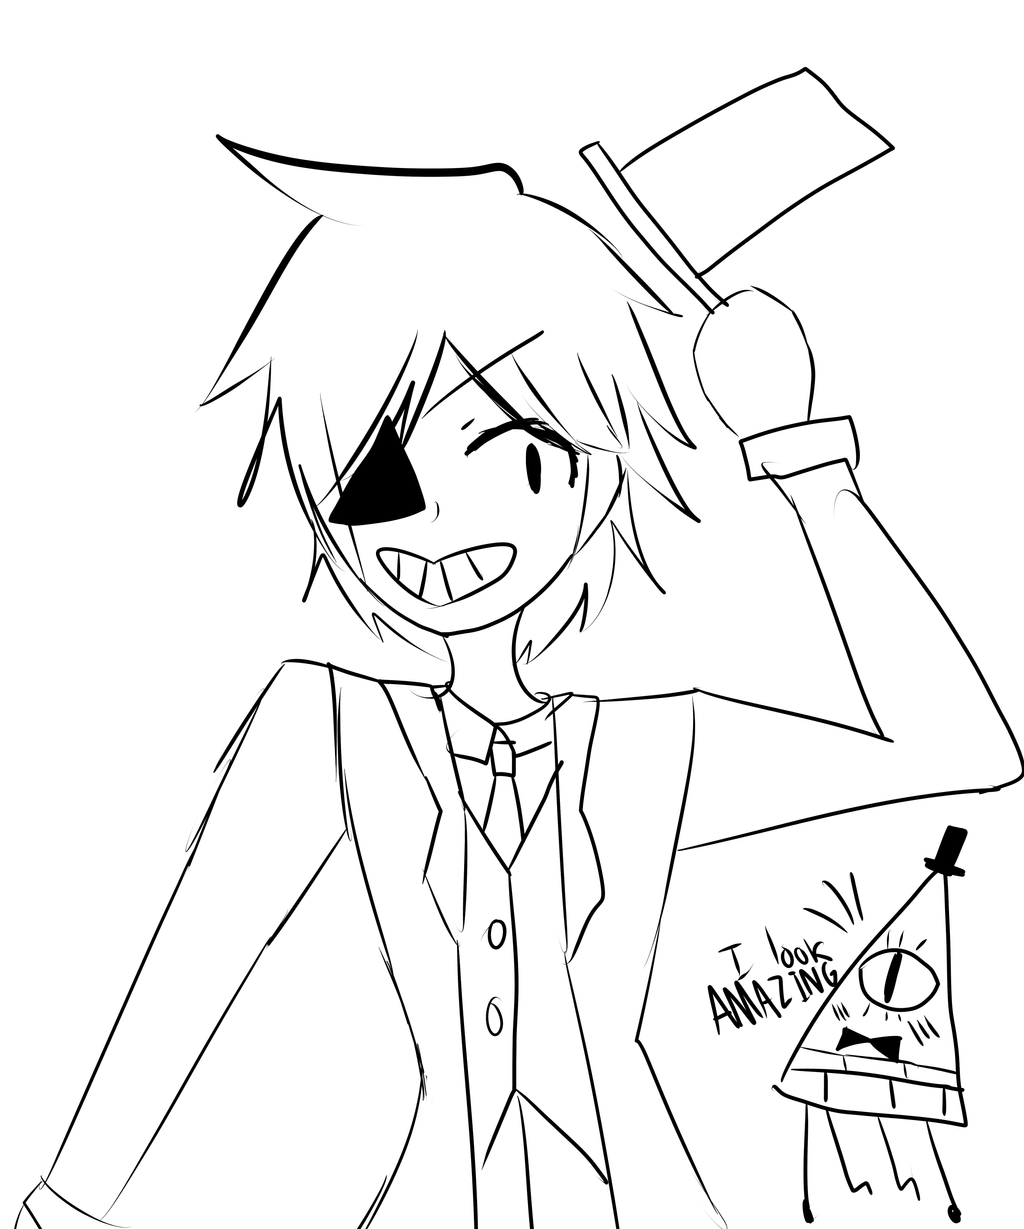 Bill cipher coloring pages ~ Bill Cipher Key Chain Sketch Coloring Page